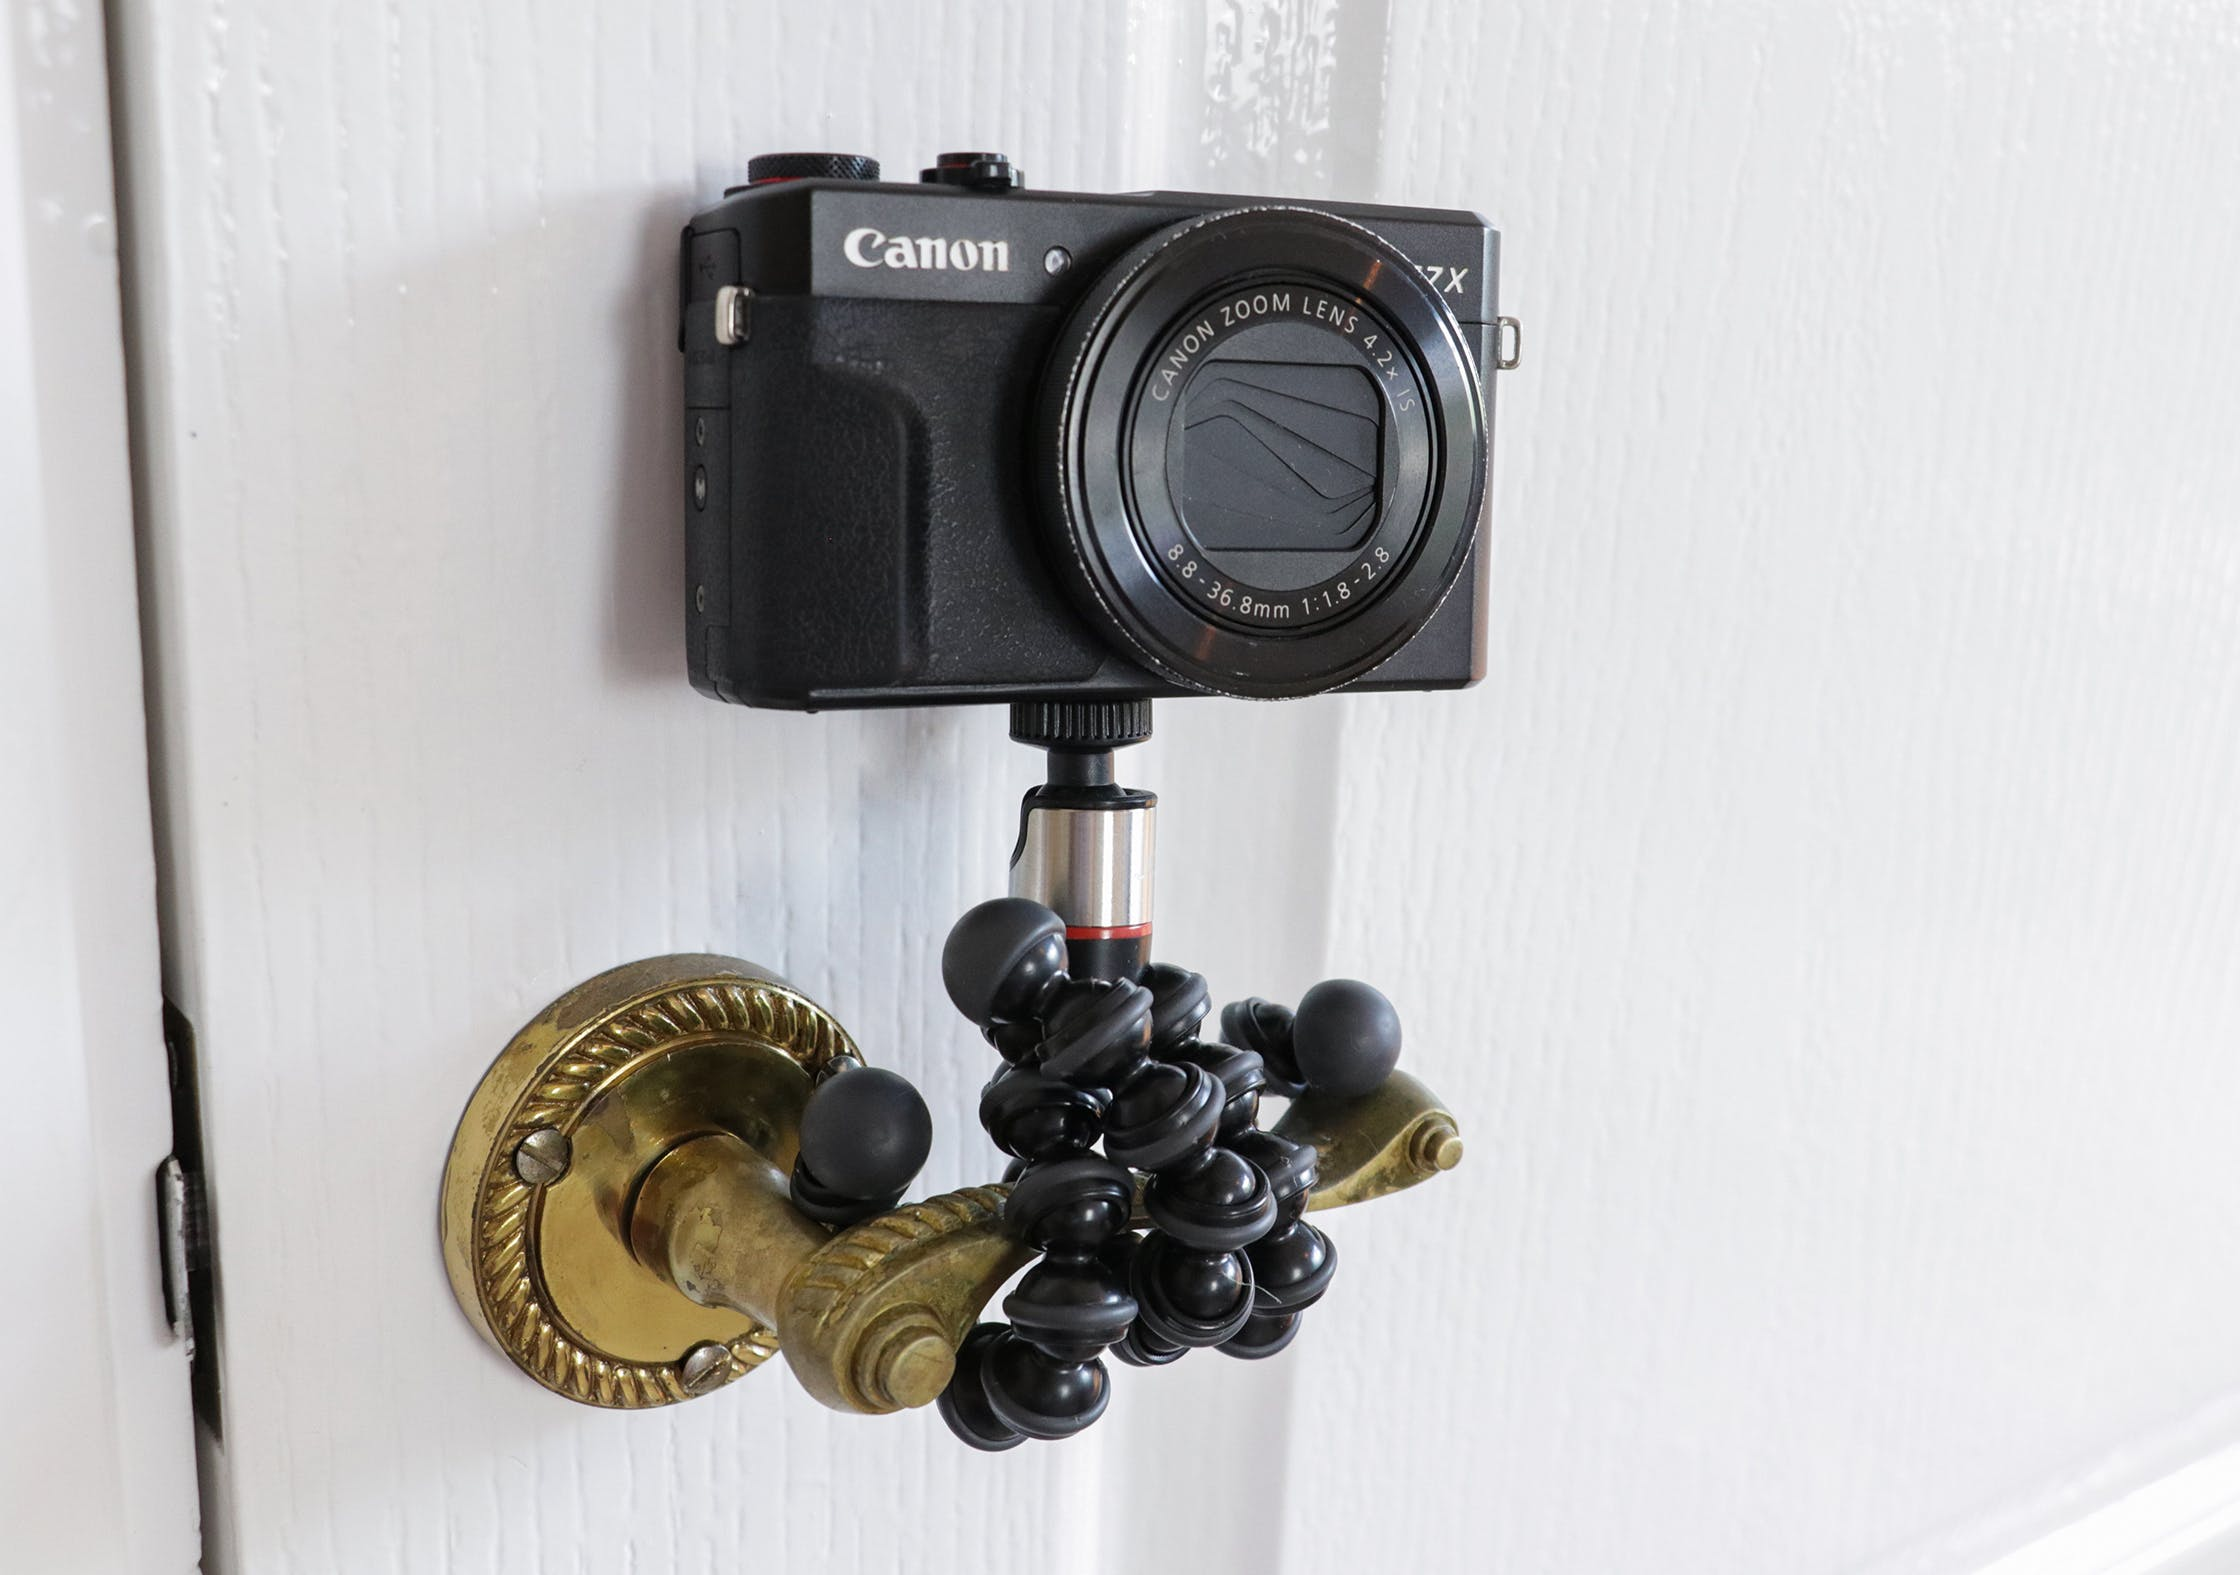 Using The JOBY GorillaPod 325 As A Wrapping Mount